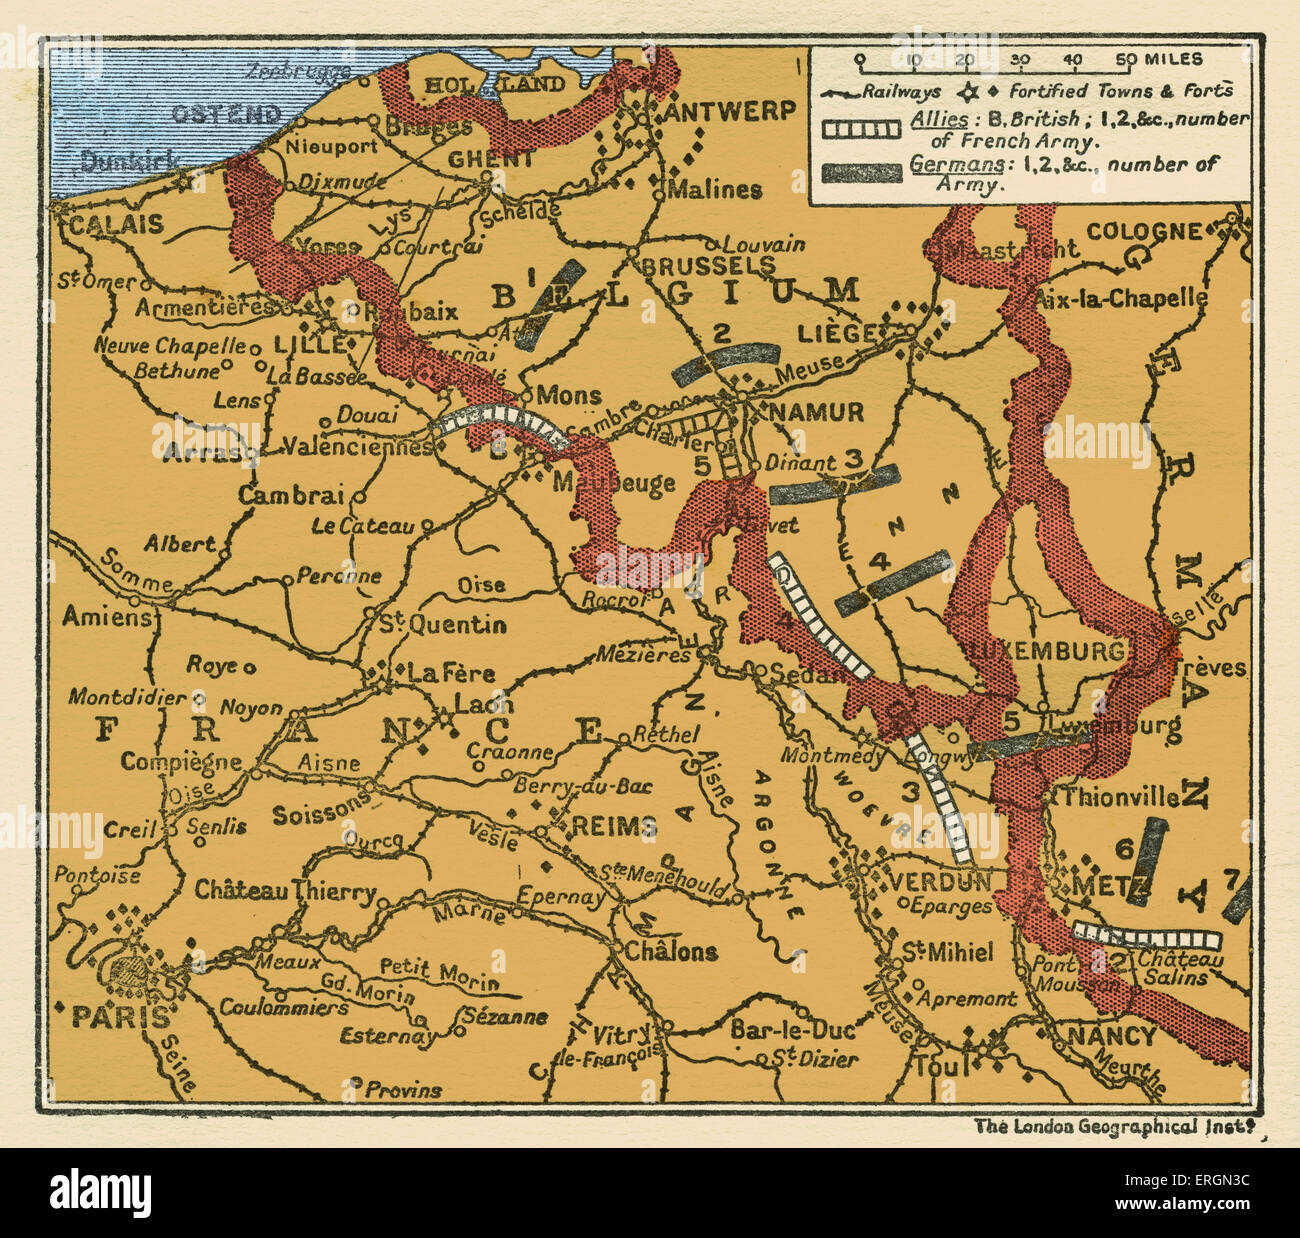 wwi map of the position of the armies august 22 1914 in belgium and france shwoing german army divisions and british and